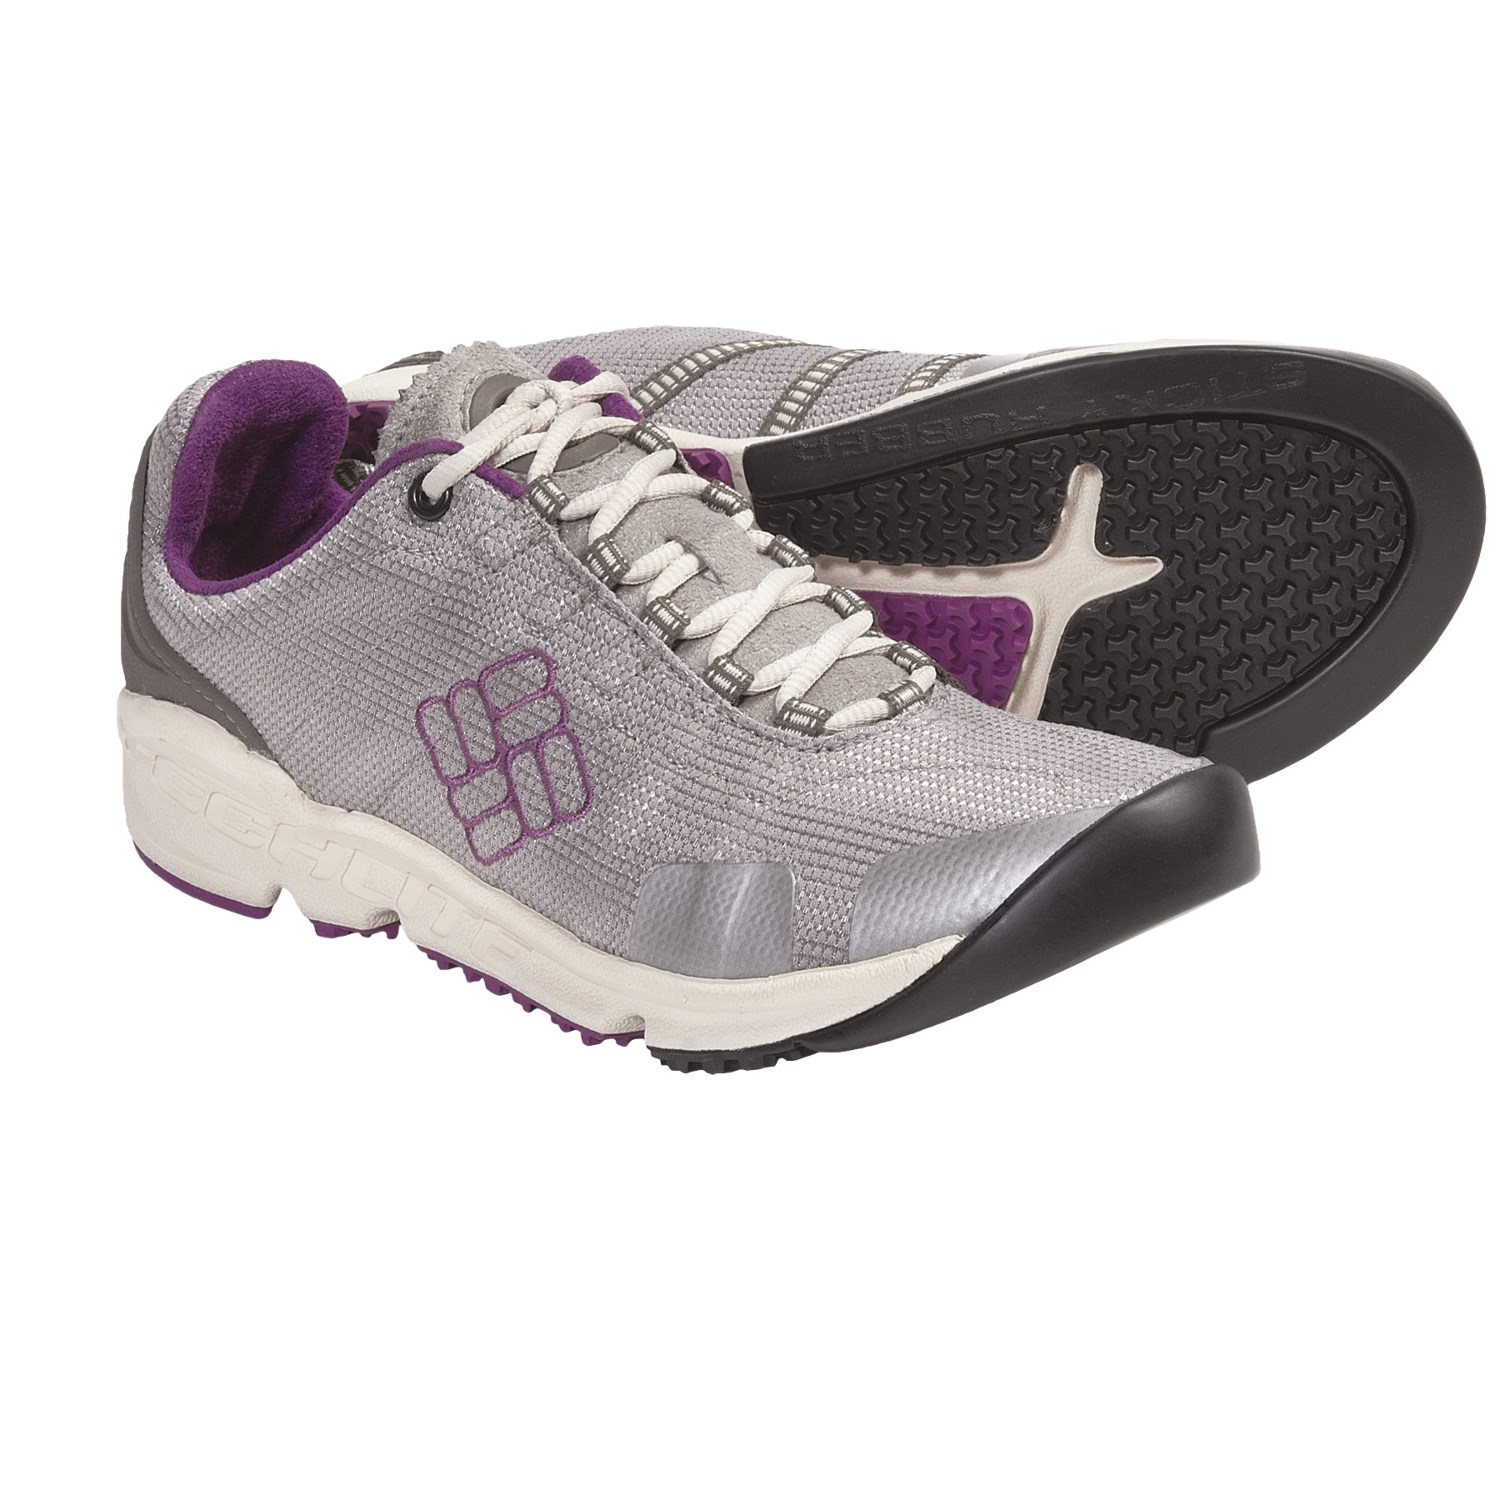 Descender Multi-Sport Trail Shoes (For Women) in Tusk/Berry Jam